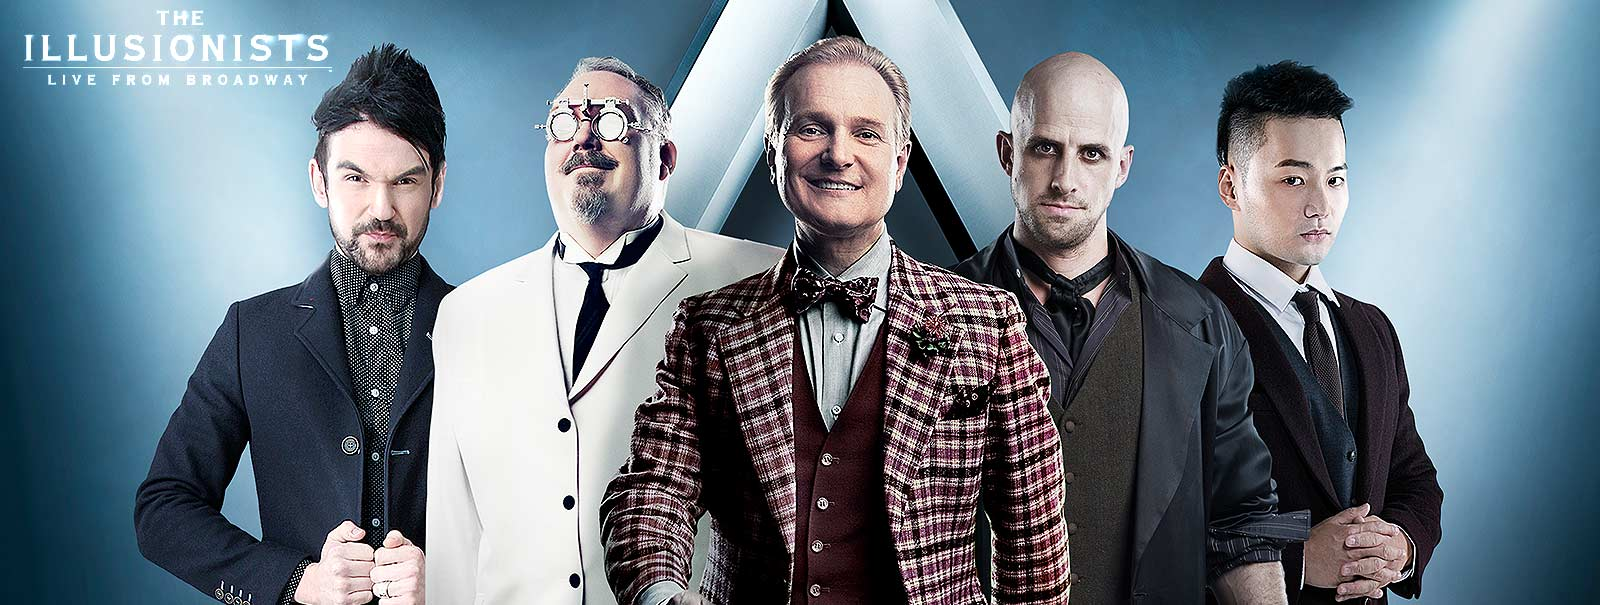 More Info - The Illusionists